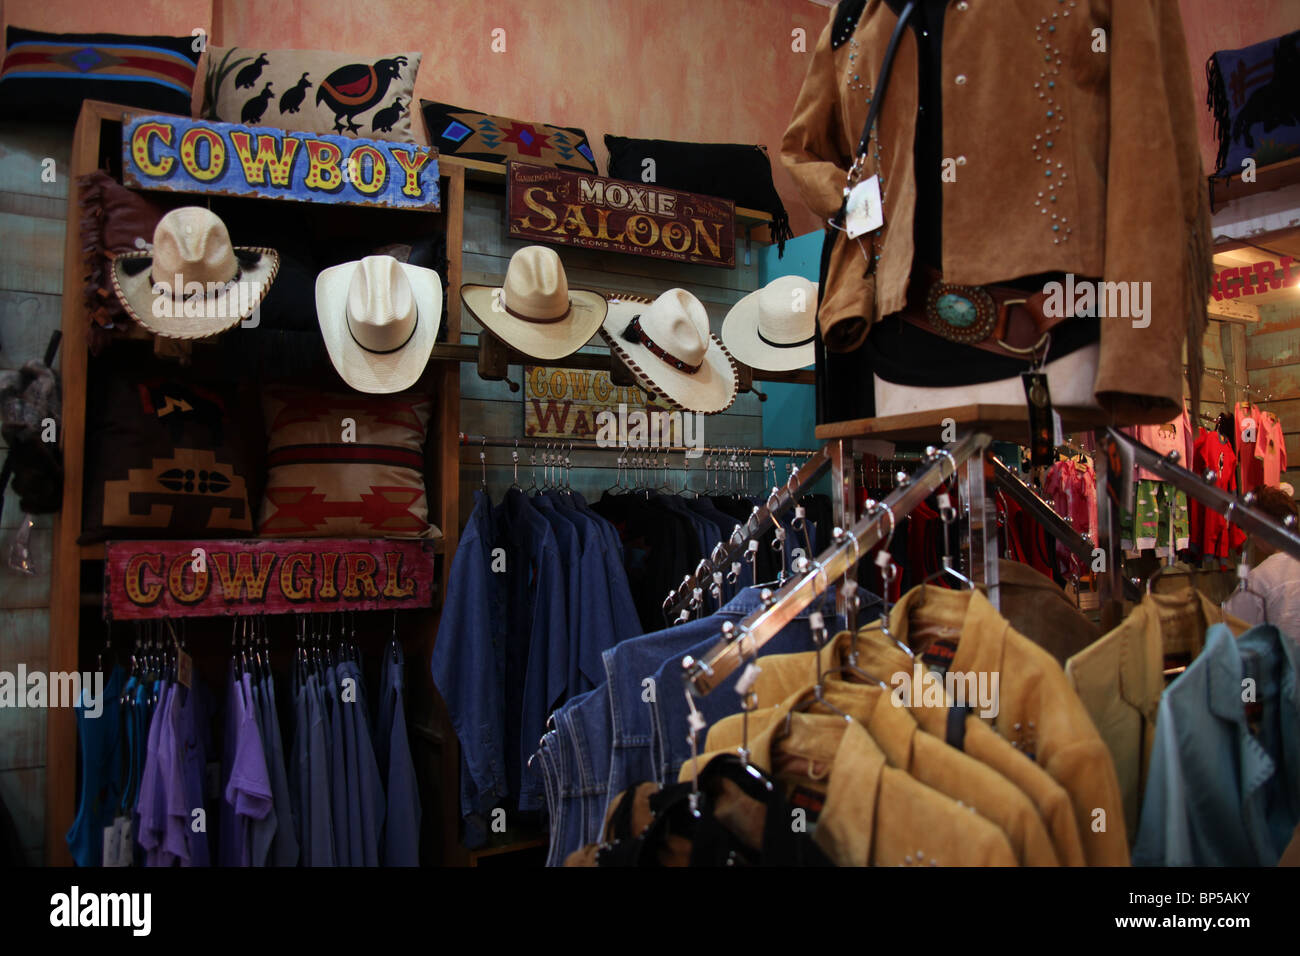 Cowboy And Cowgirl Western Clothing Shop In Santa Fe New